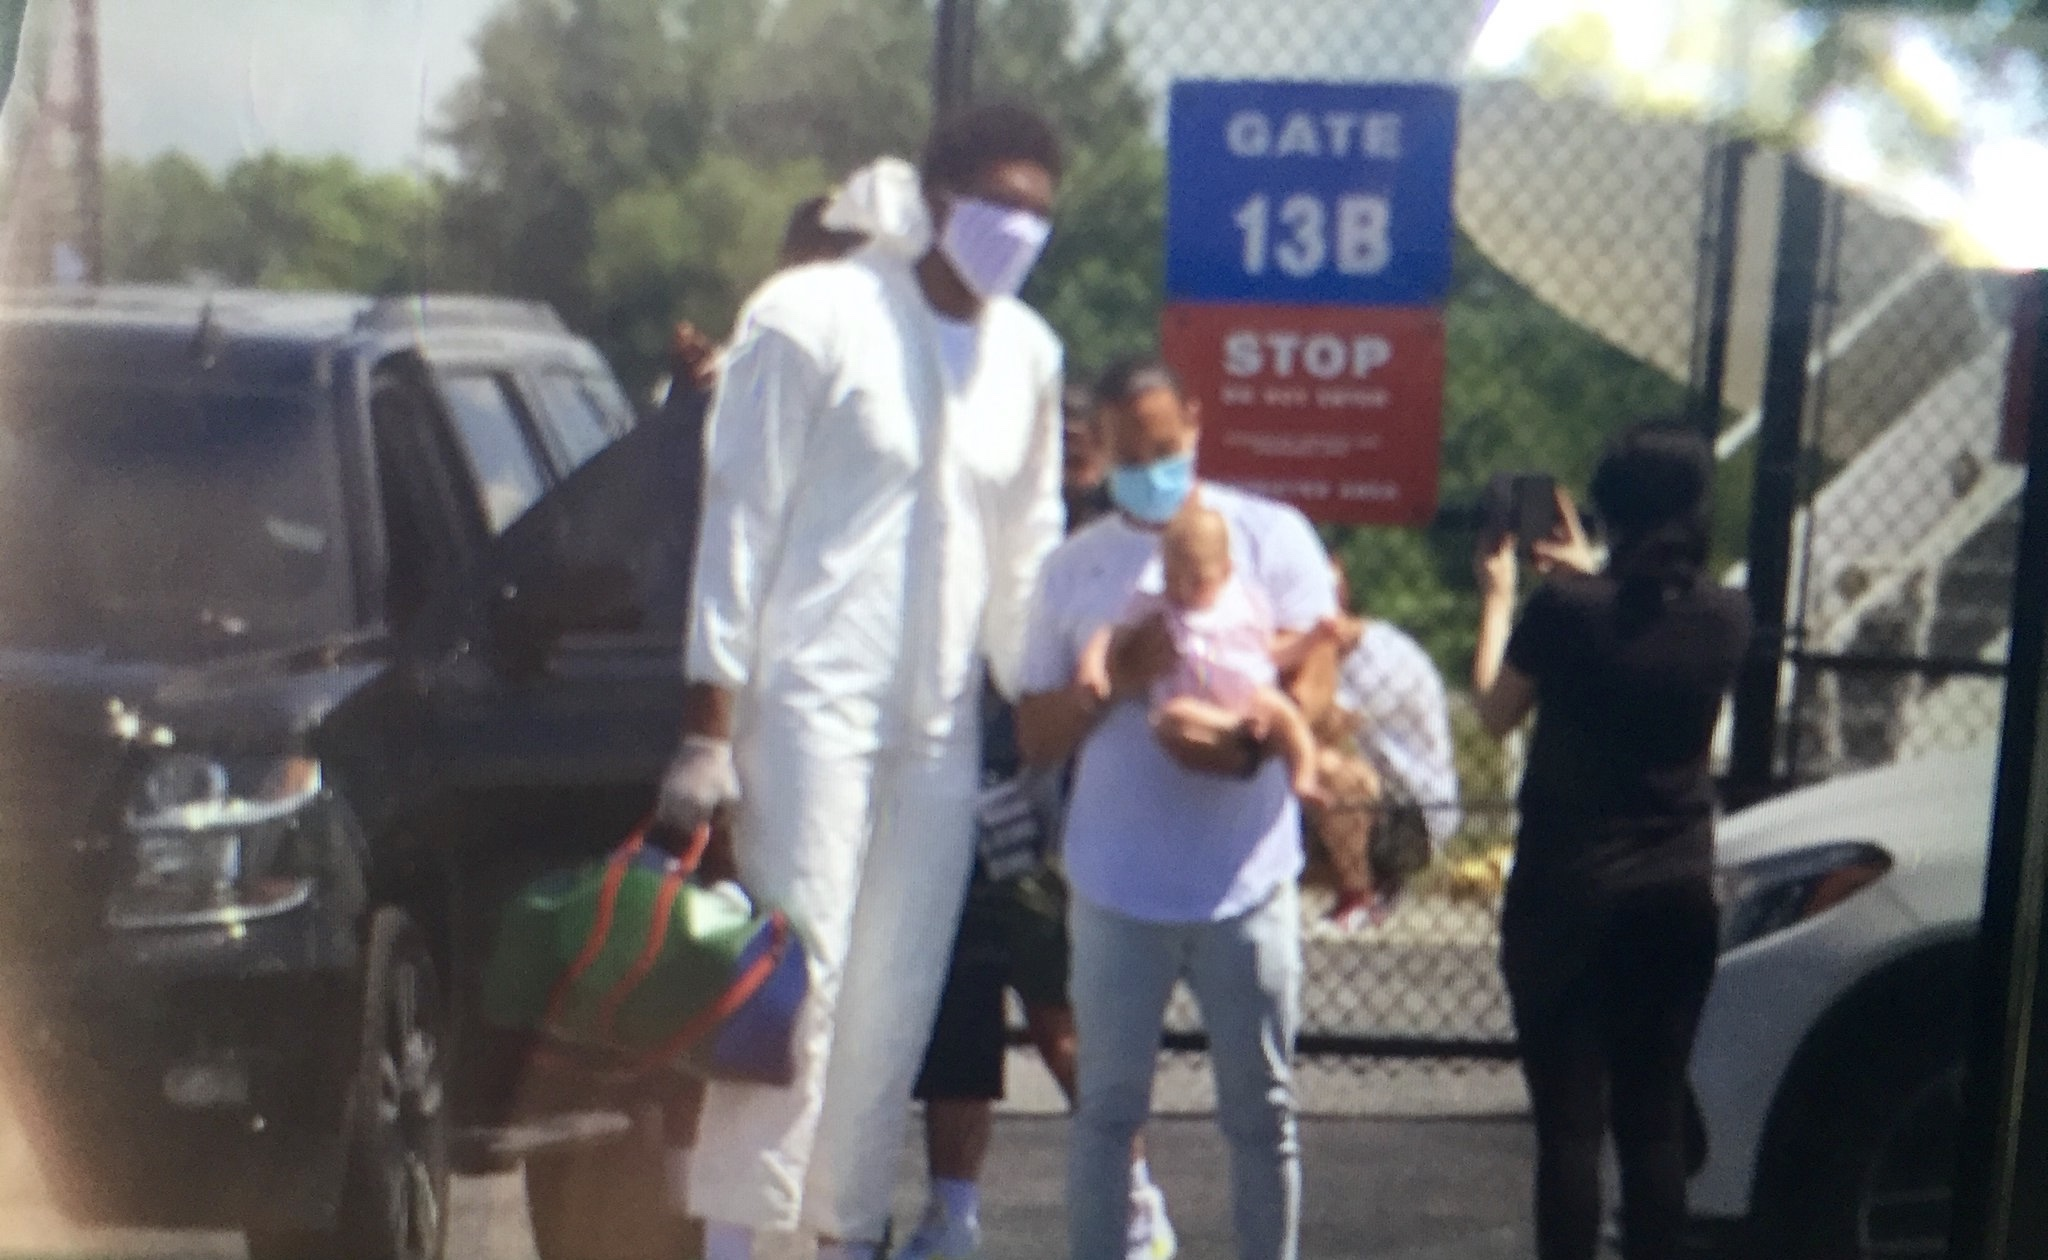 Video: Embiid Puts On A Tyvek Suit Before Flight To Orlando